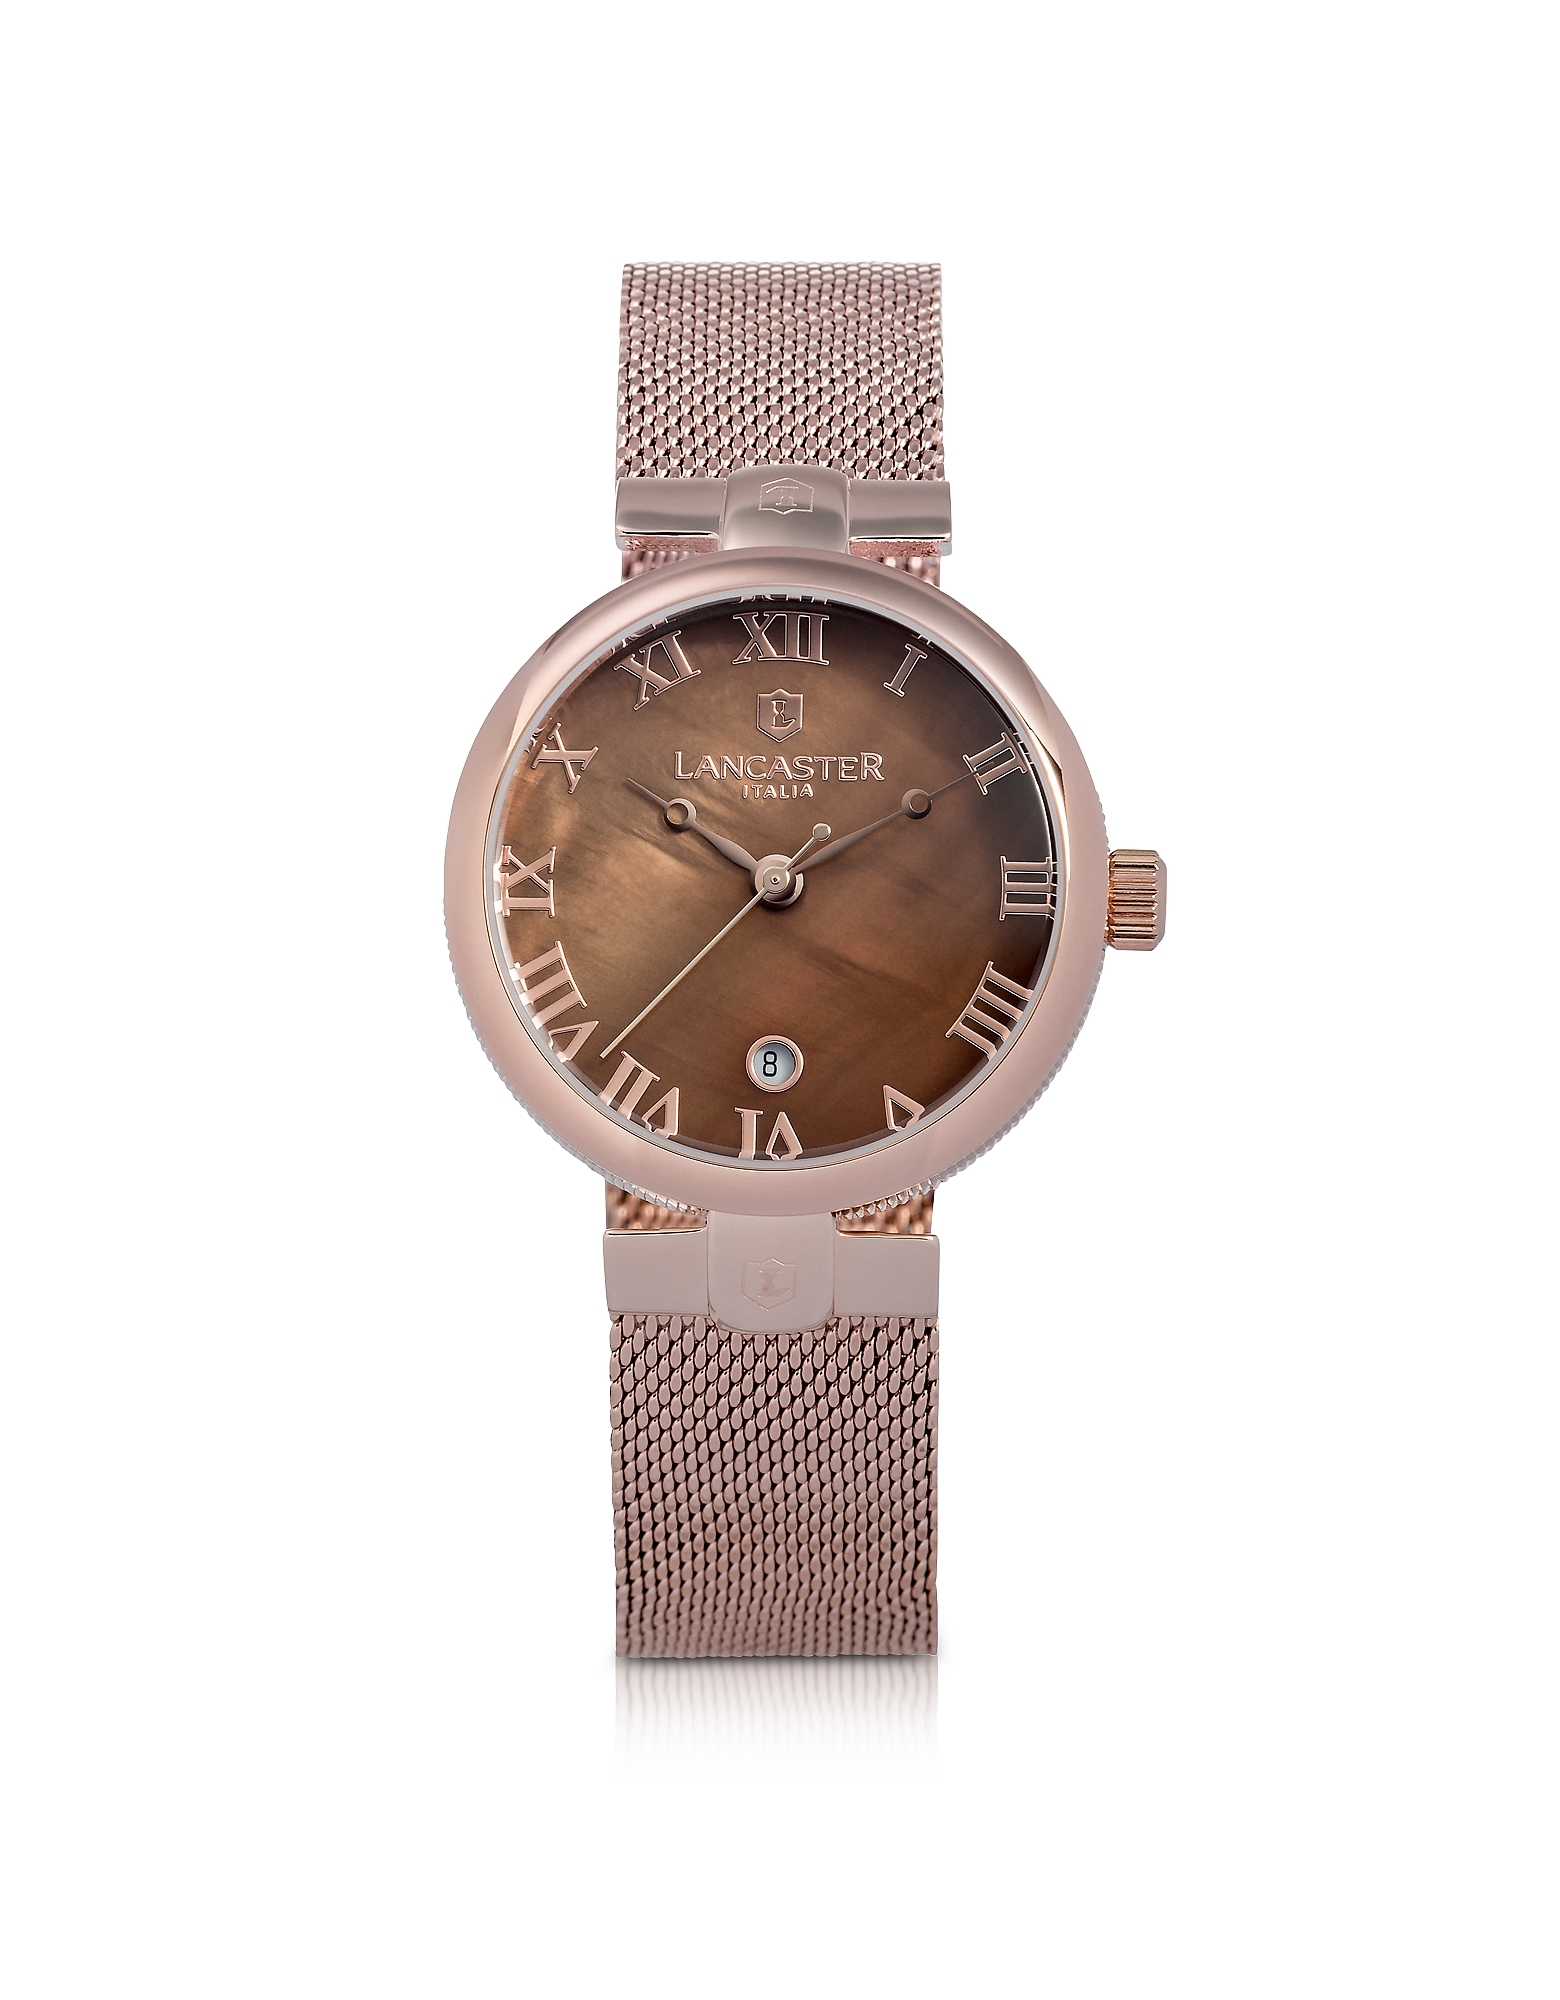 Lancaster Women's Watches, Chimaera Rose Gold Stainless Steel Watch w/Brown Dial